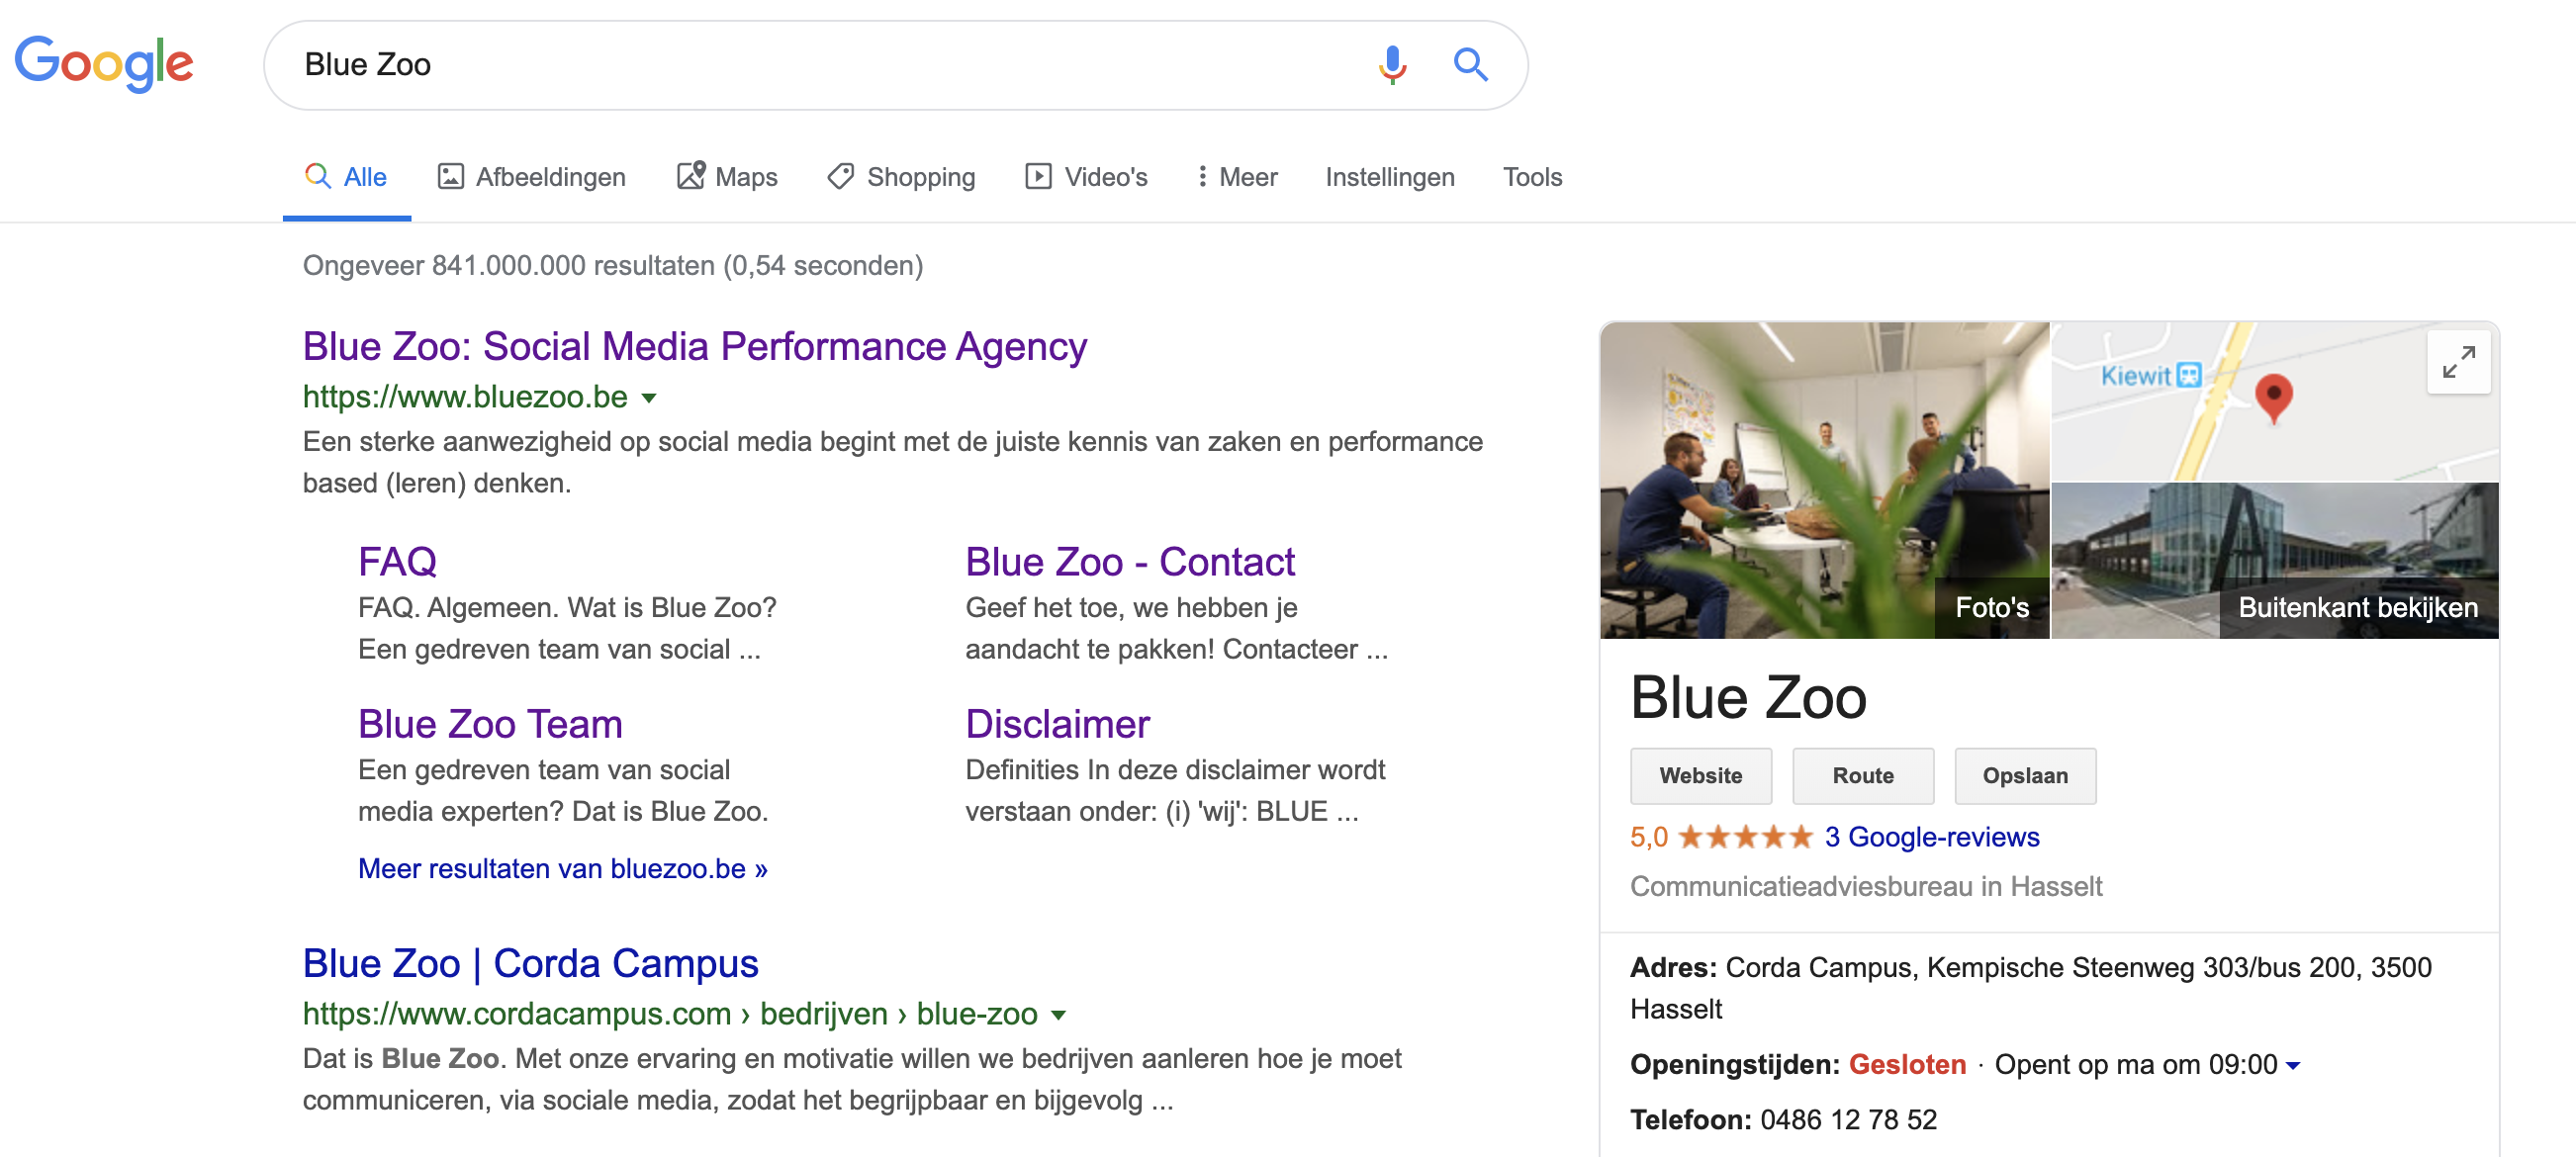 Google My Business voorbeeld Blue Zoo